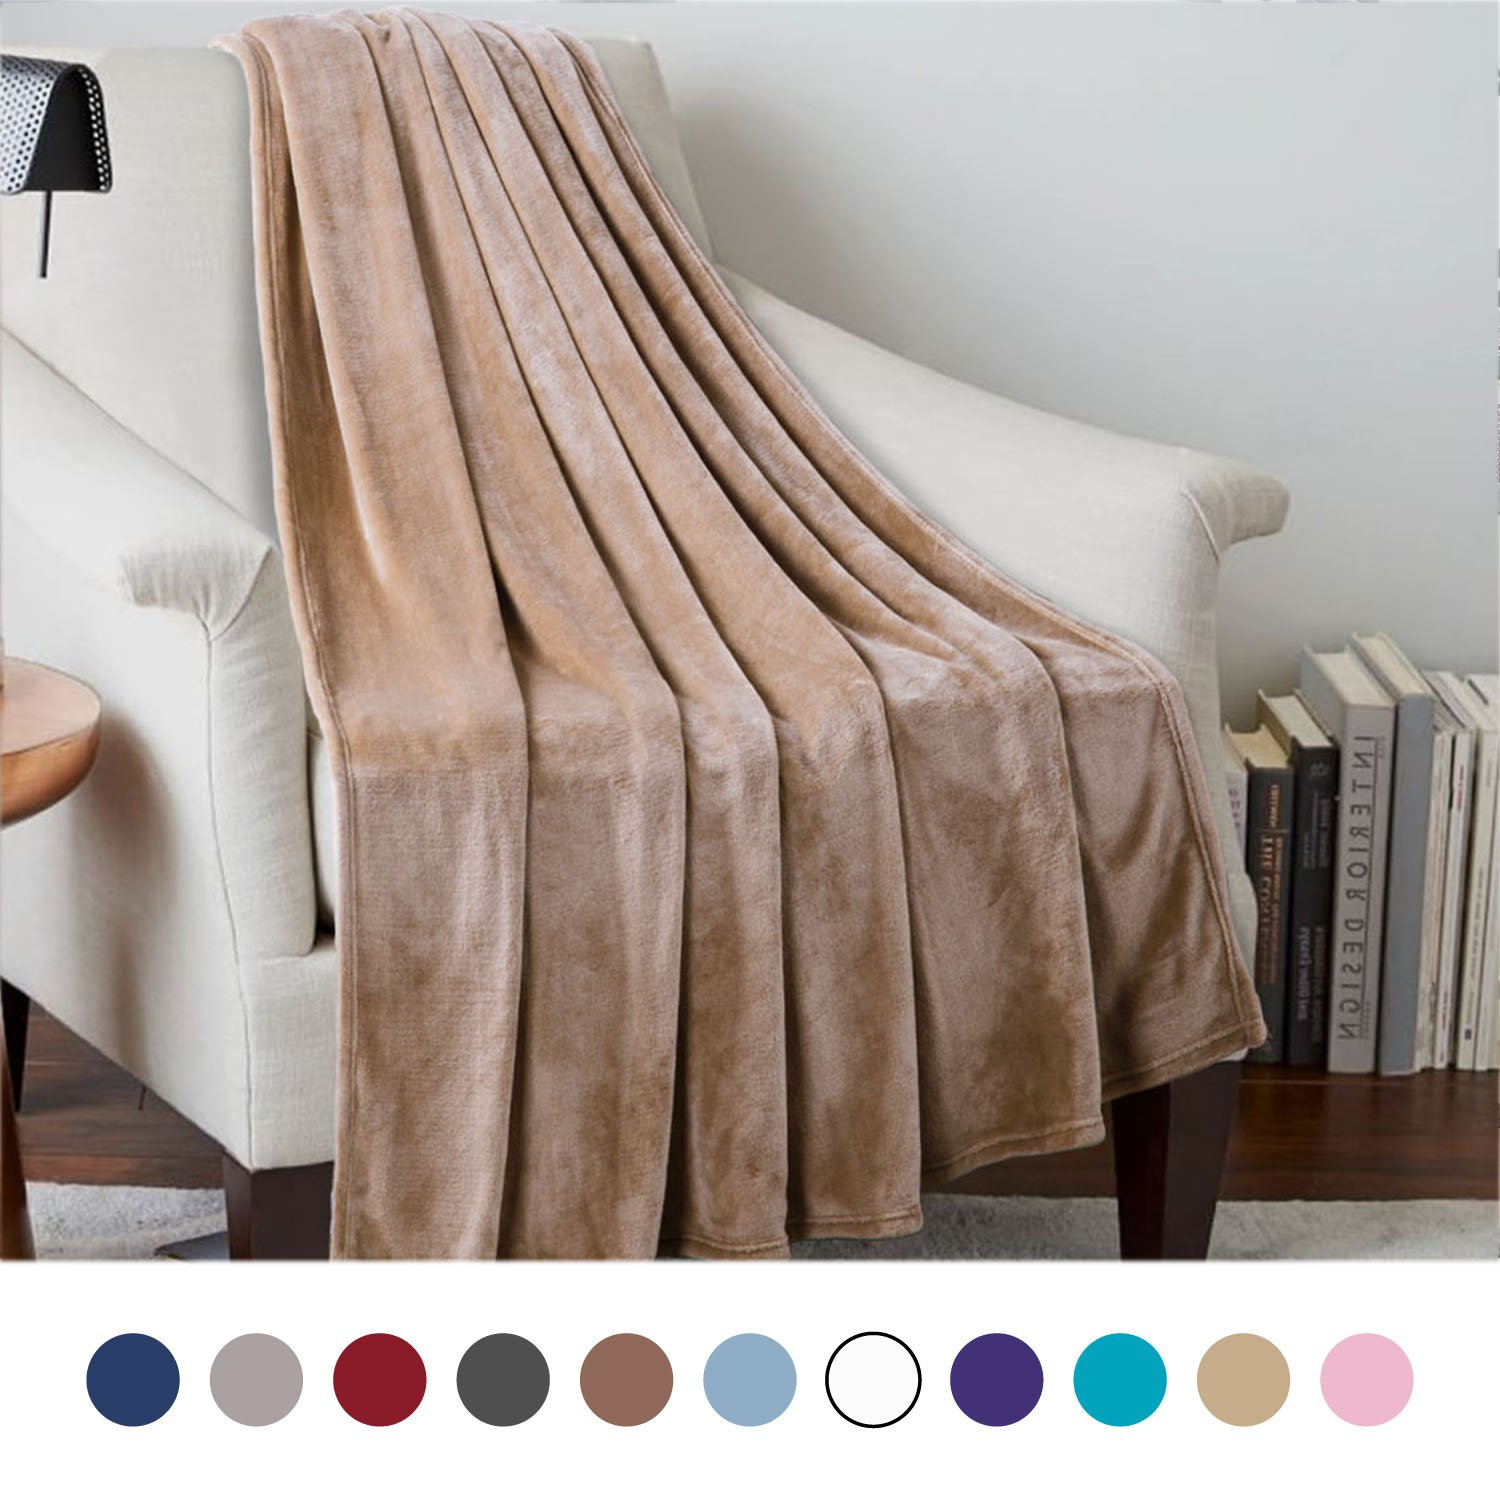 Bedsure Flannel Fleece Luxury Blanket Camel Twin Size Lightweight Cozy Plush Microfiber Solid Blanket